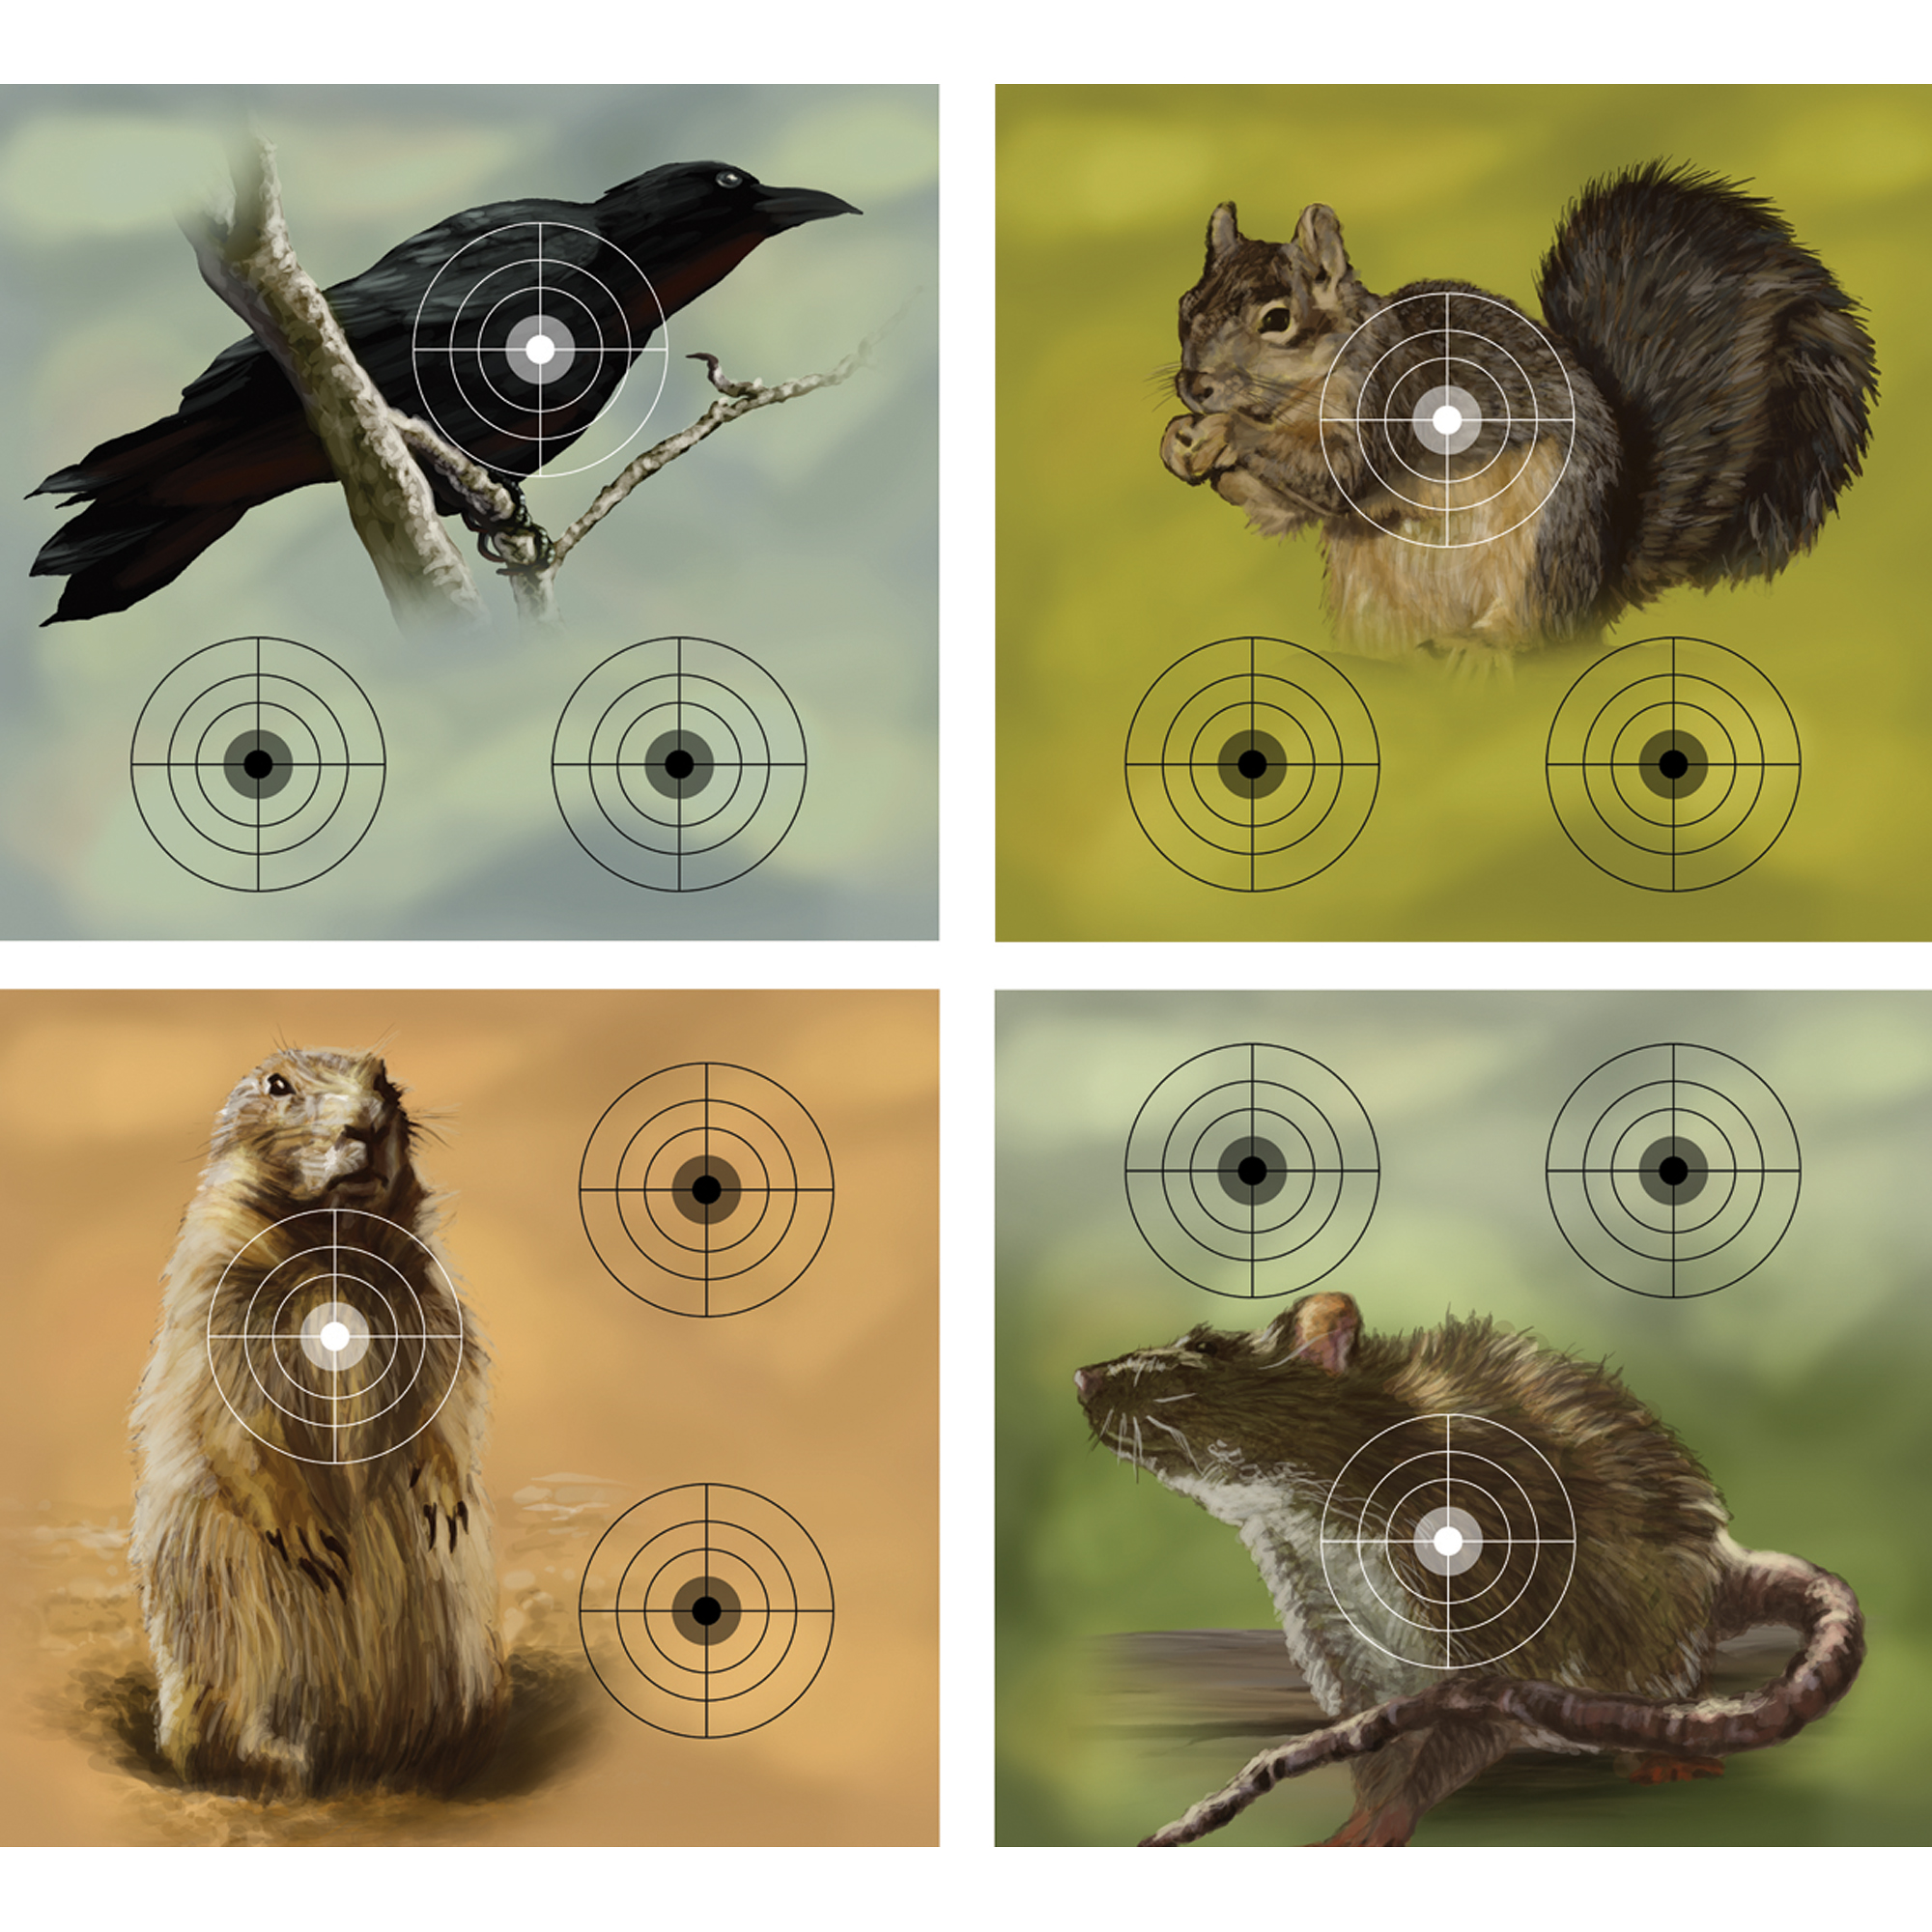 This package of 9.75 x 9 inch paper targets features 5 of 4 distinct designs for a total of 20 targets per package. Each individual paper target features three aiming points.